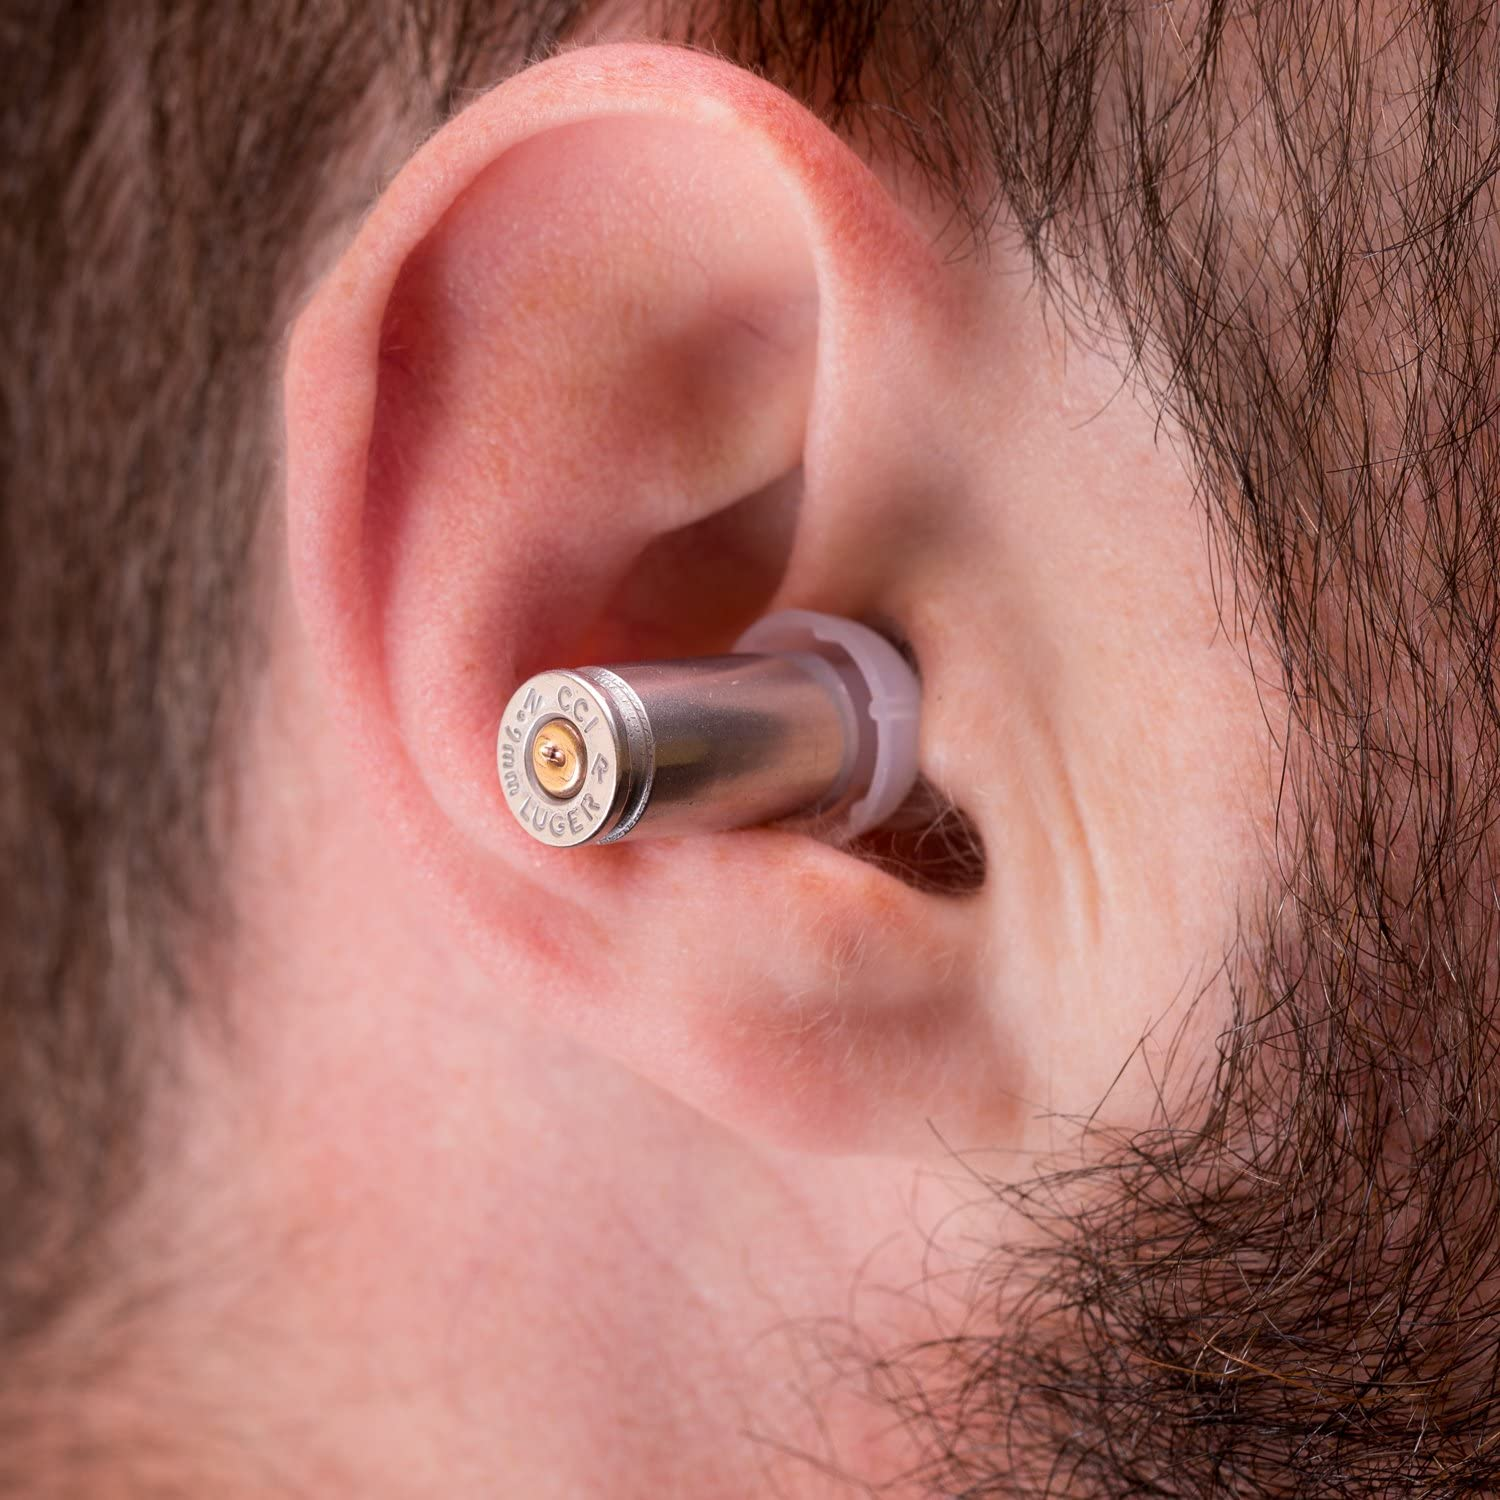 9MM REAL Earplugs